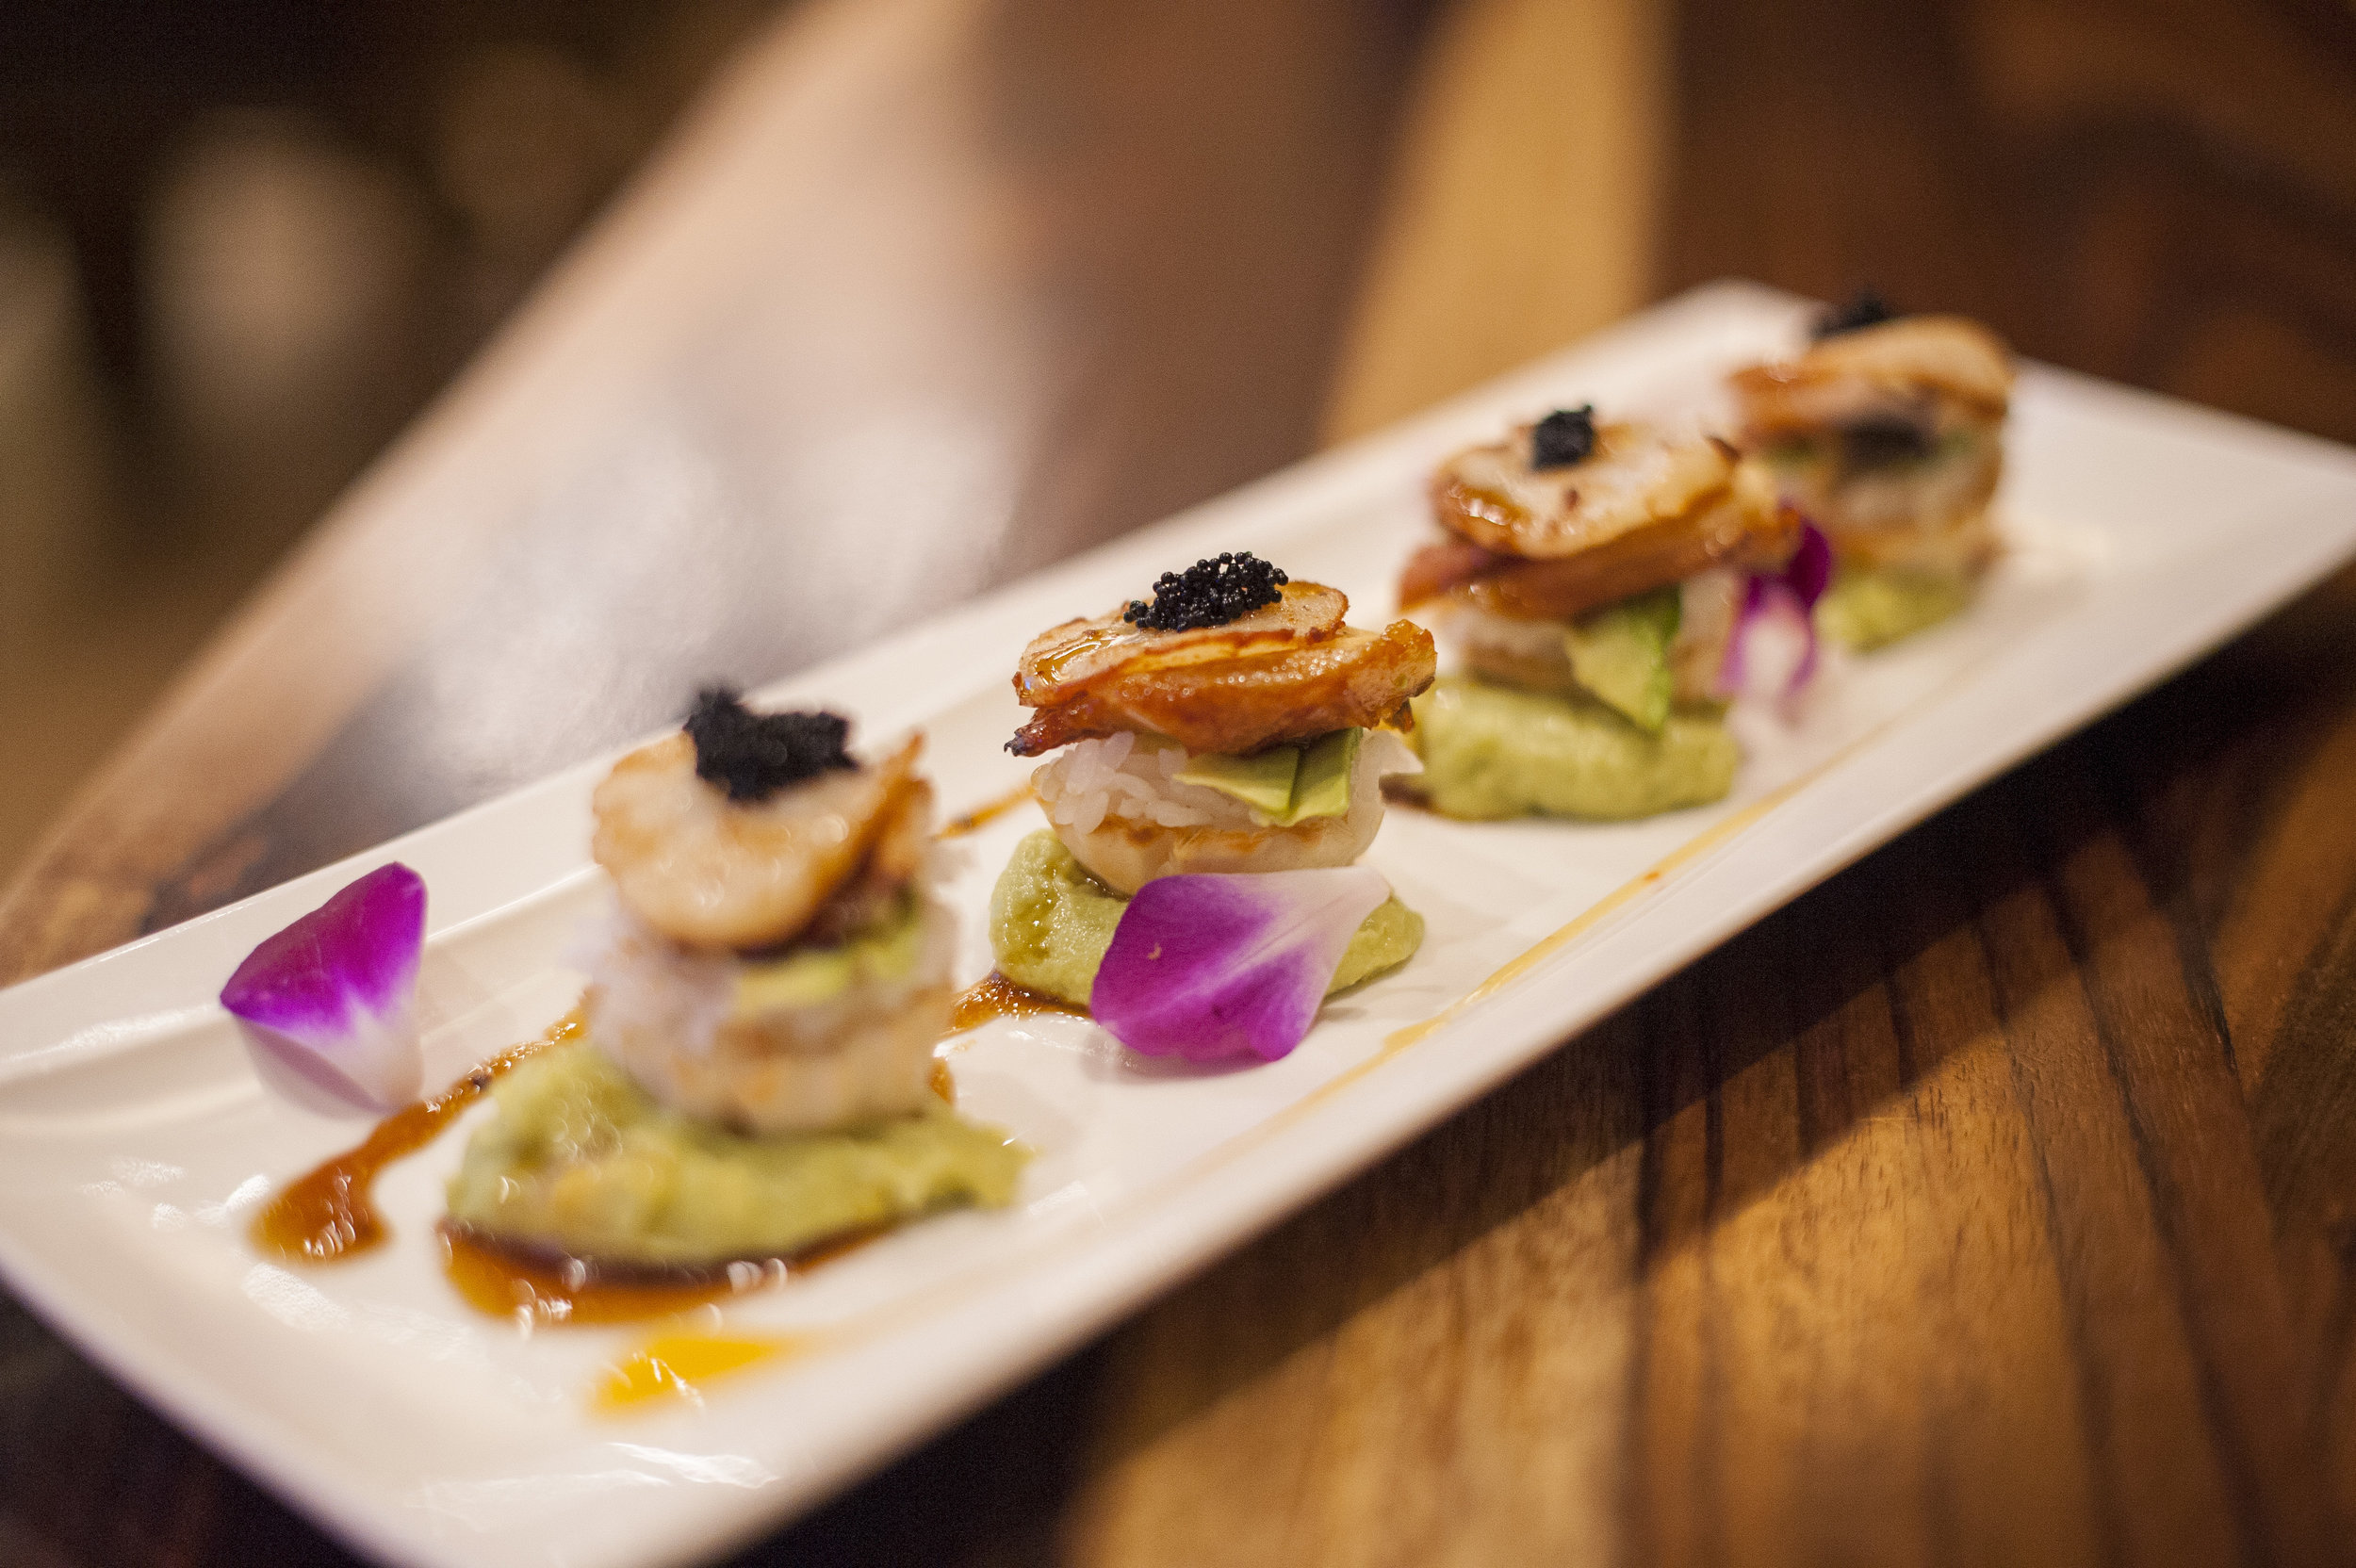 Zaza Japan's Pan Seared Scallop Sushi comes in the form of four mini fillo shells filled with sushi rice, avocado, layered with eel and pan seared scallop, drizzled with a bit of horseradish sauce.